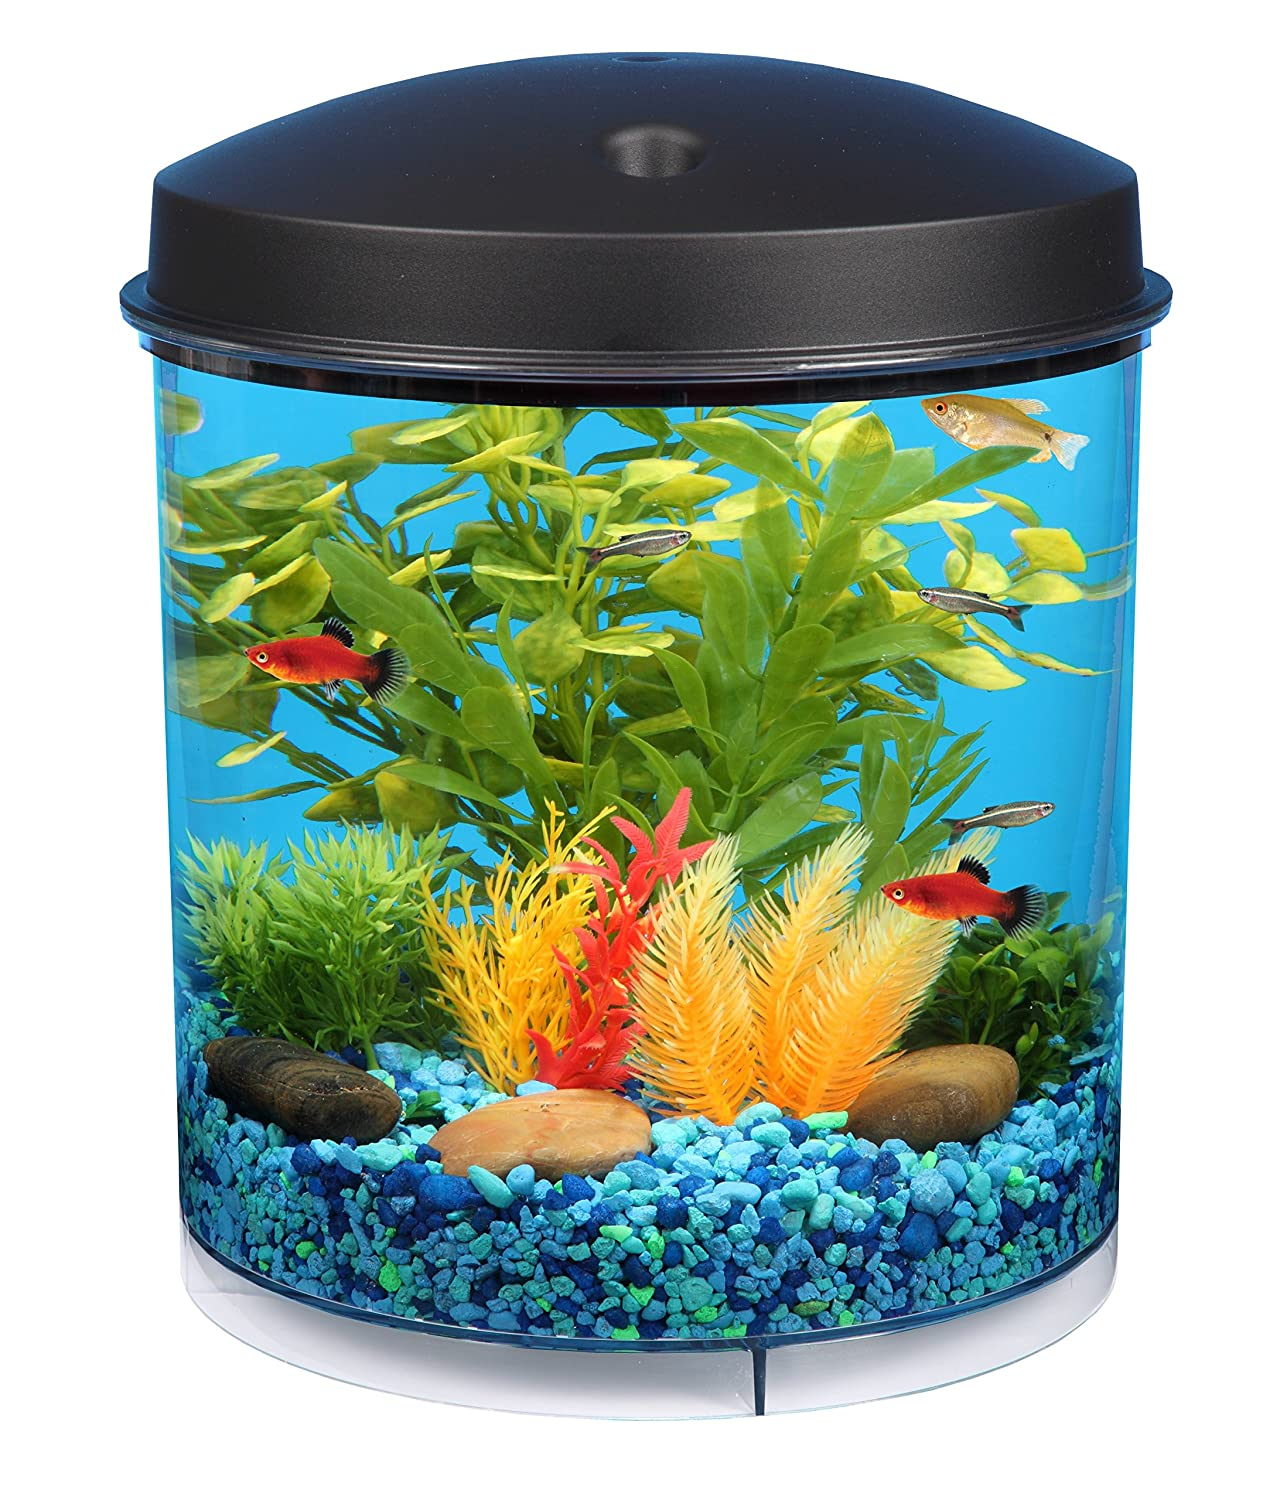 Small aquarium fish tanks - Amazon Com Api Aquaview 360 Aquarium Kit With Led Lighting And Internal Filter 2 Gallon Topfin Fish Aquariums Pet Supplies